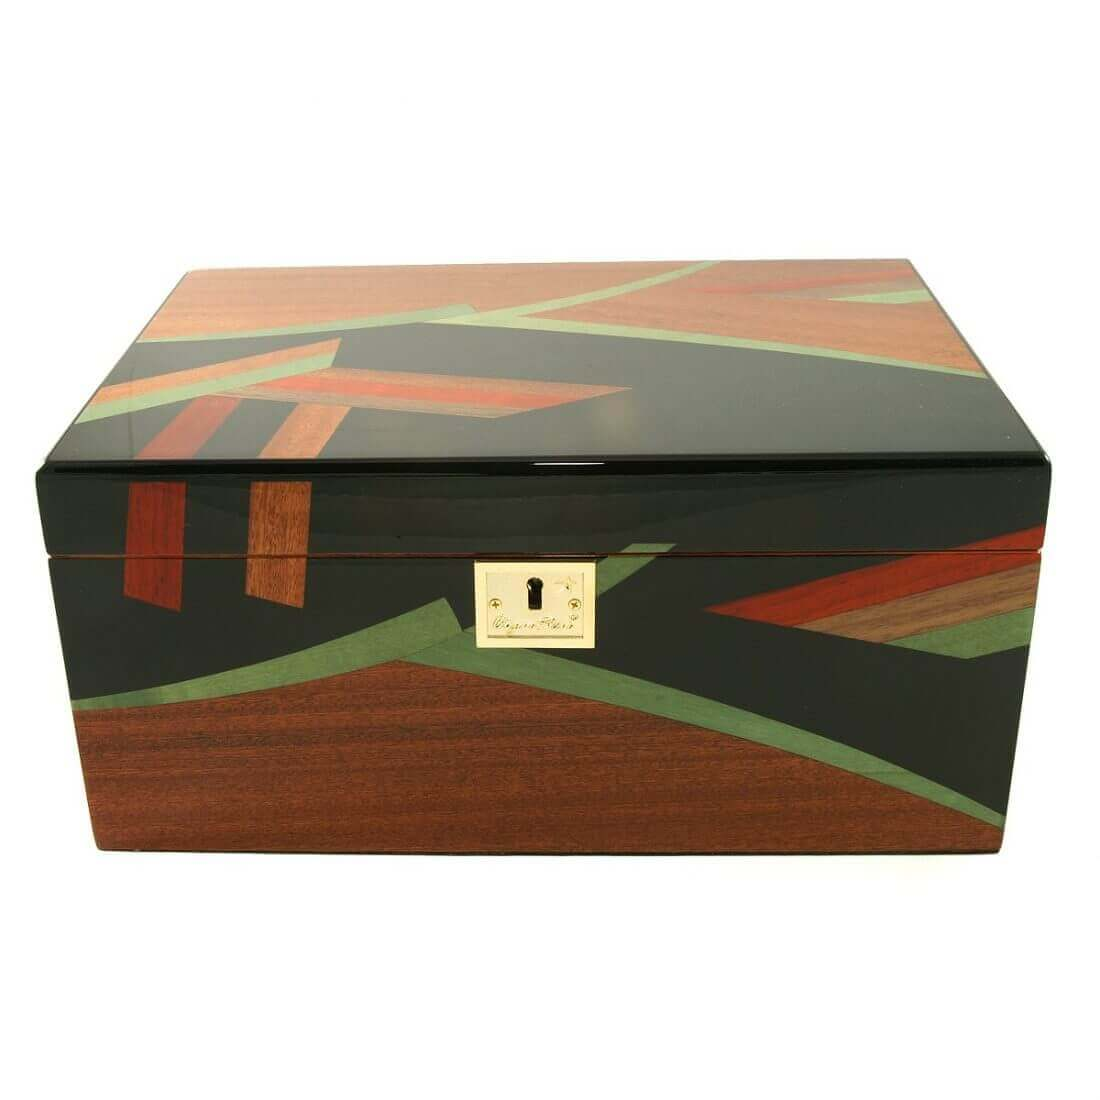 We are the best place to buy a quality cigar humidor in Canada